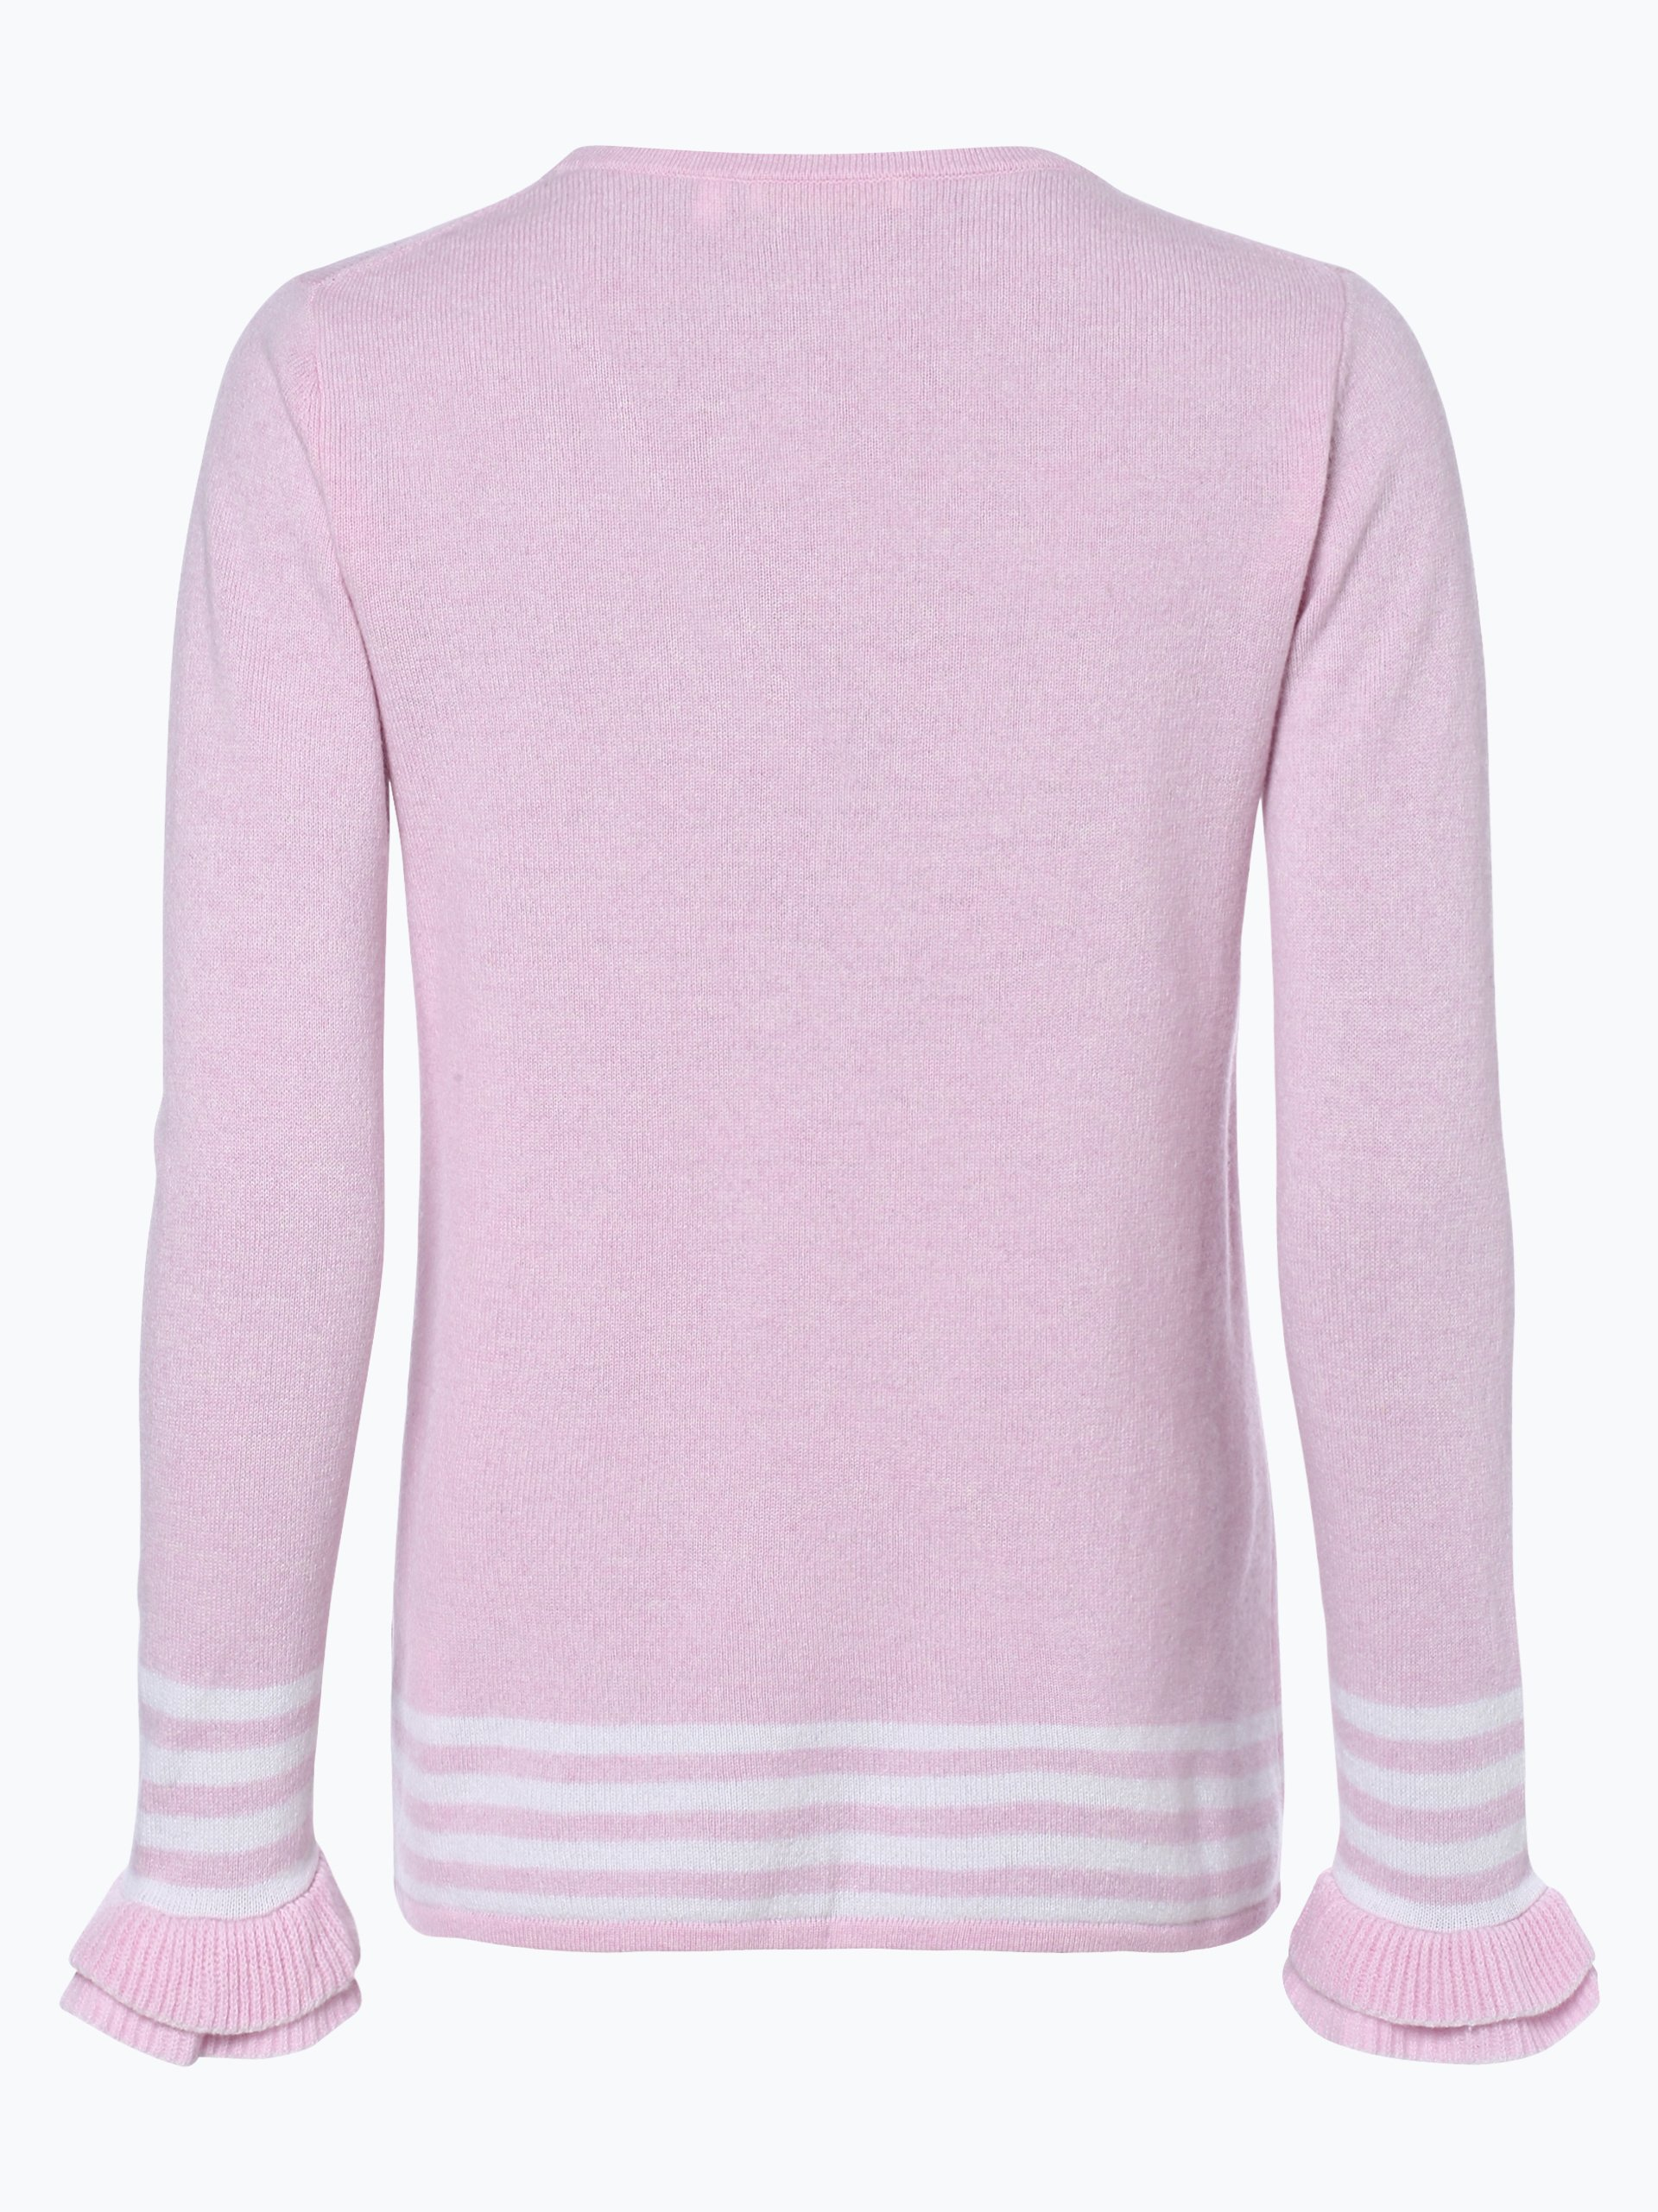 (THE MERCER) N.Y. Damen Pure Cashmere Pullover